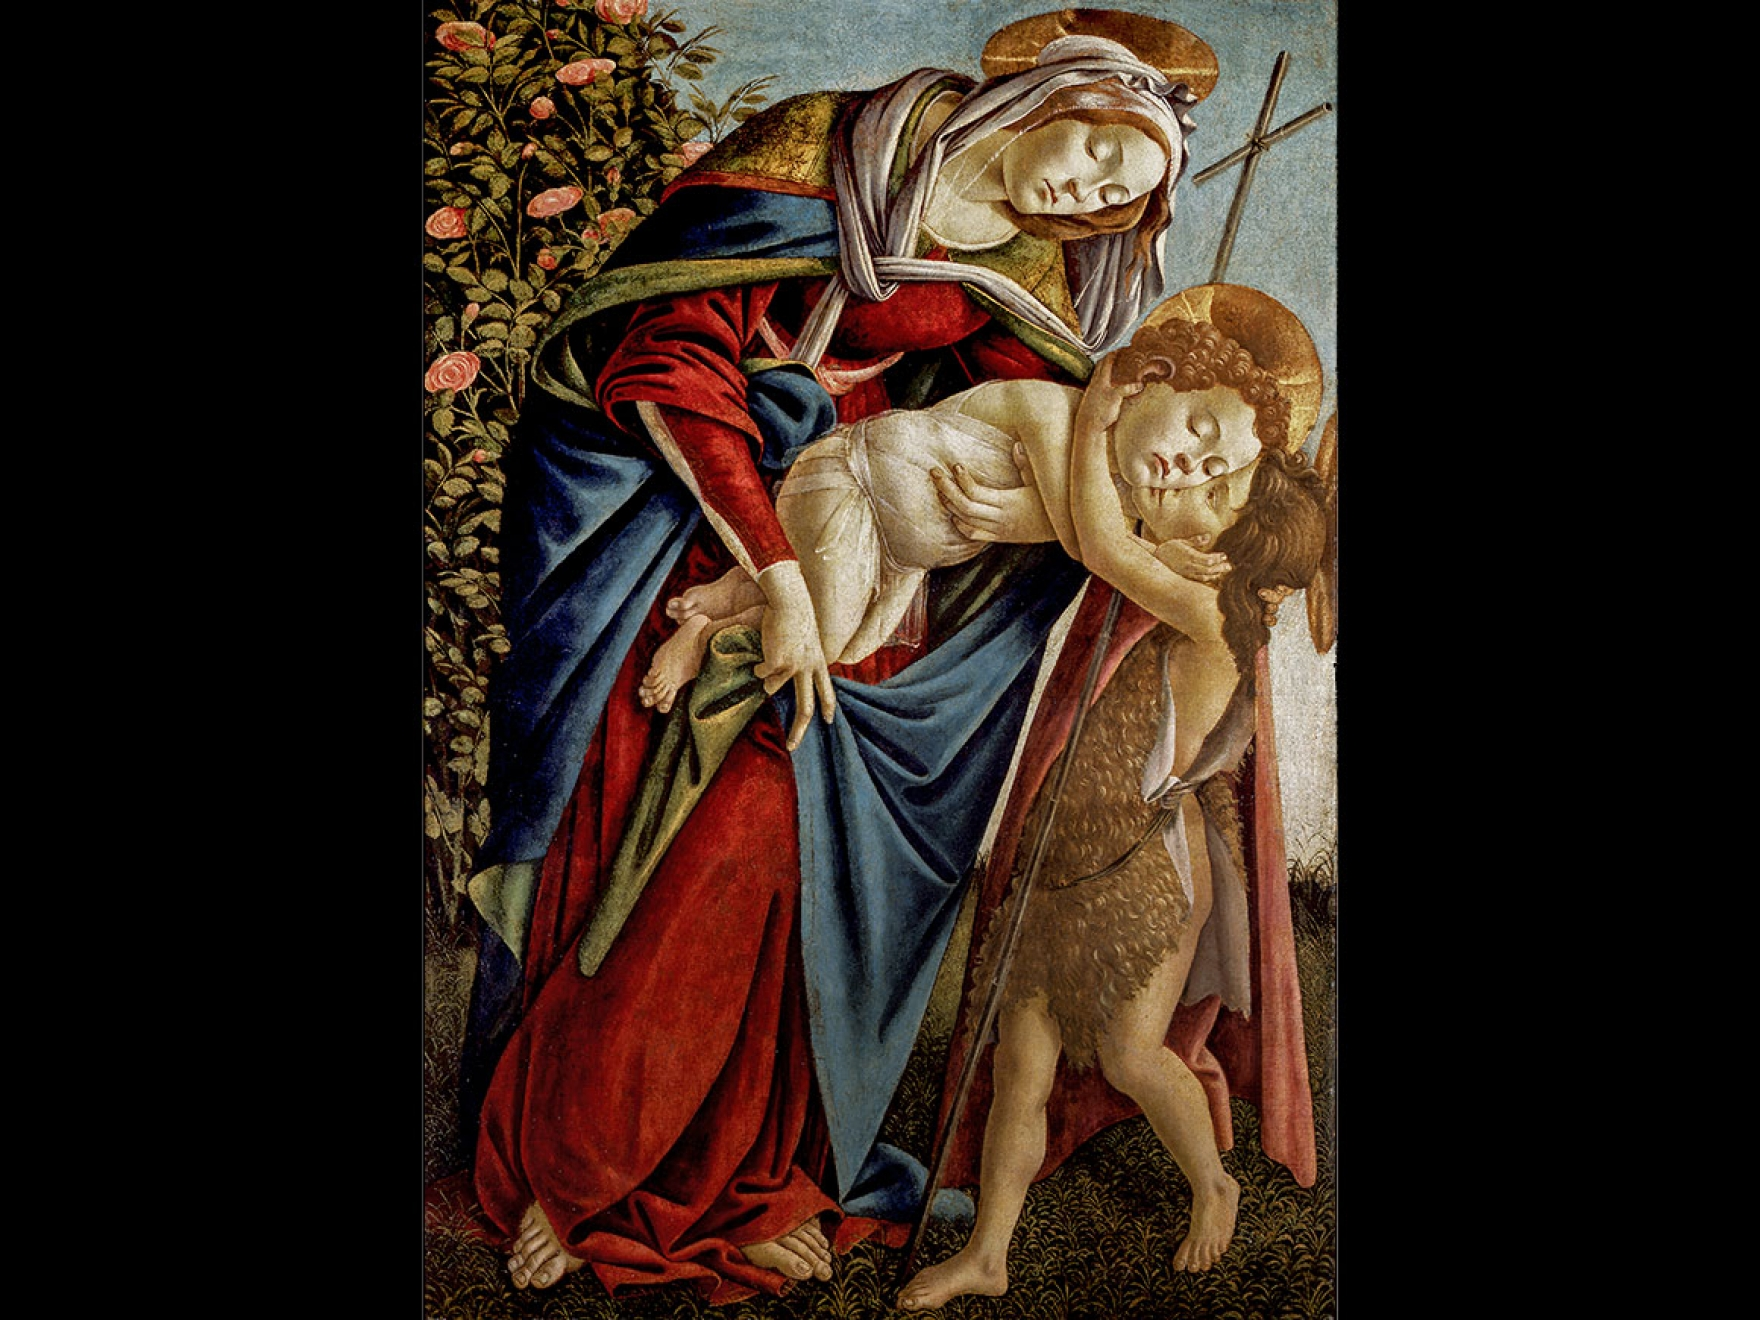 Sandro Botticelli's painting, Virgin and Child with Young Saint John, the Baptist, about 1505